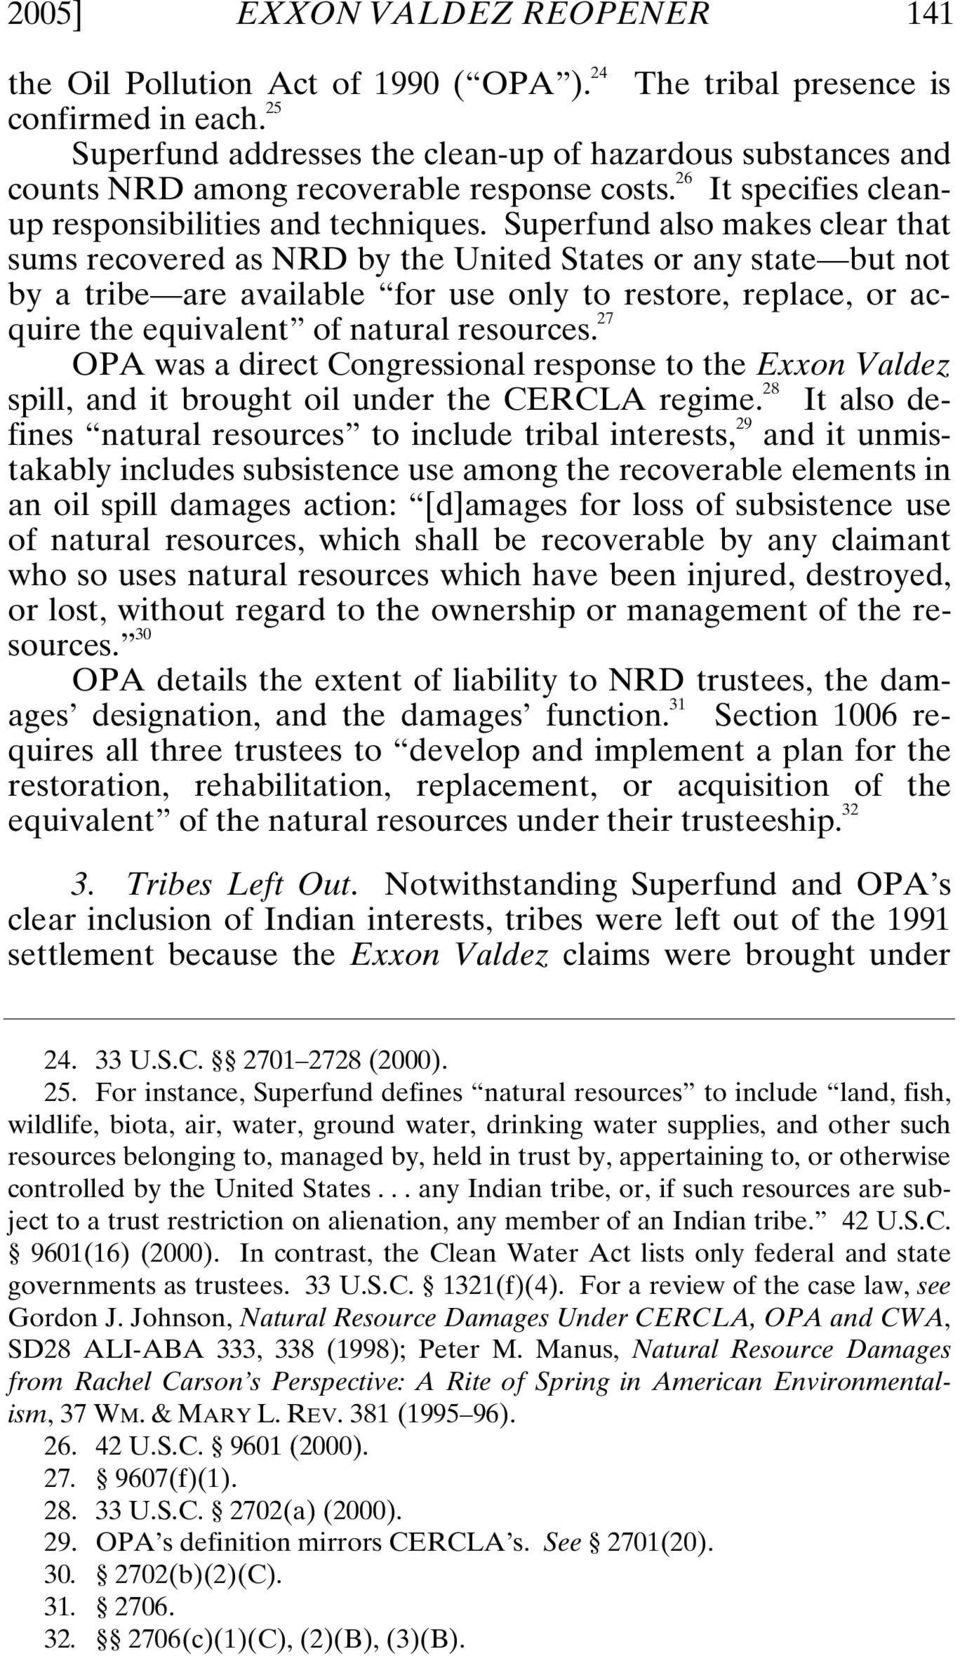 Superfund also makes clear that sums recovered as NRD by the United States or any state but not by a tribe are available for use only to restore, replace, or acquire the equivalent of natural